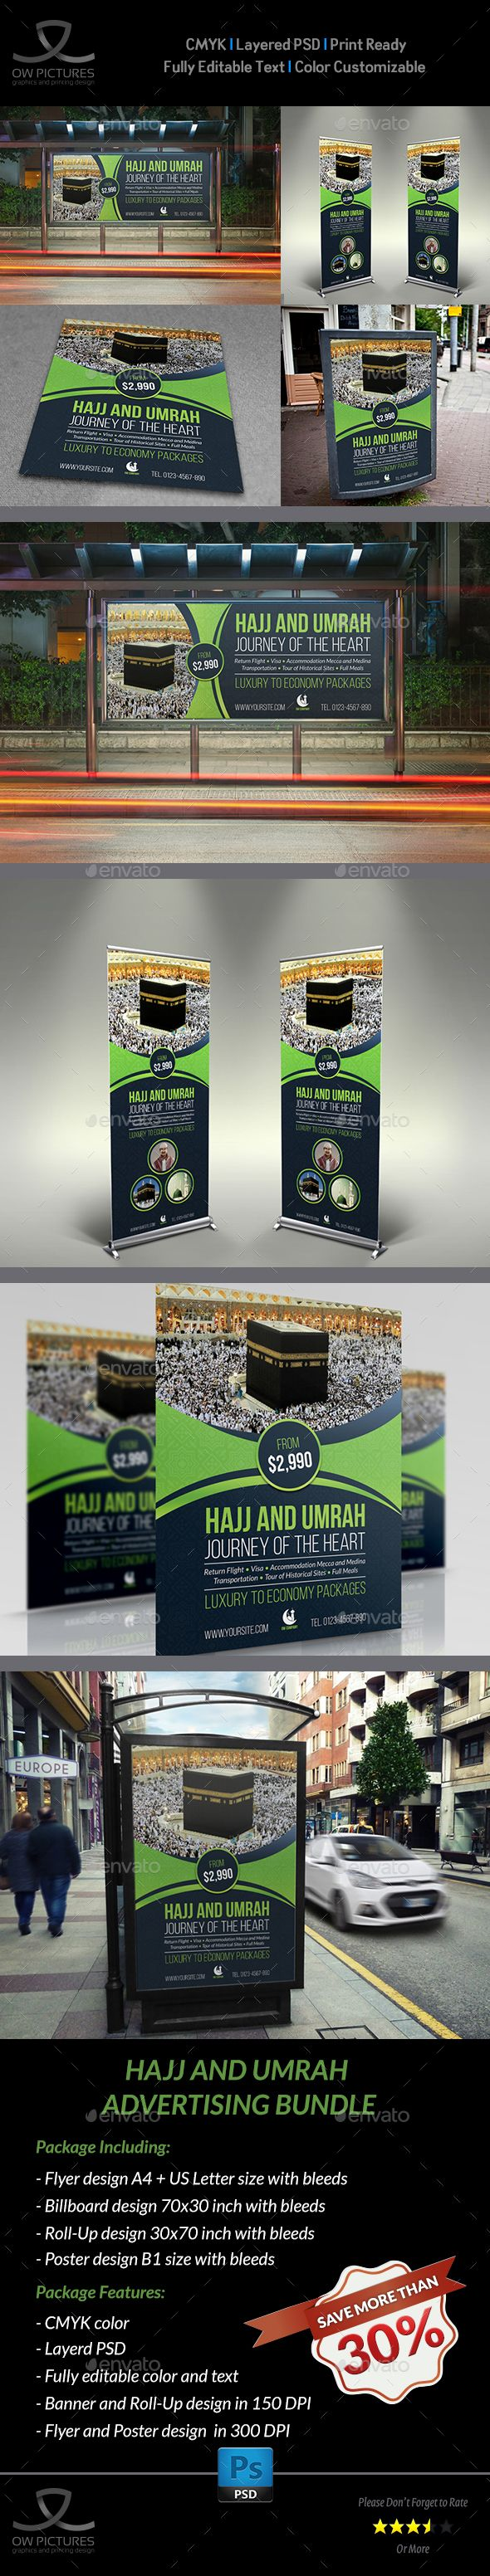 Hajj and Umrah Advertising Bundle - Template PSD